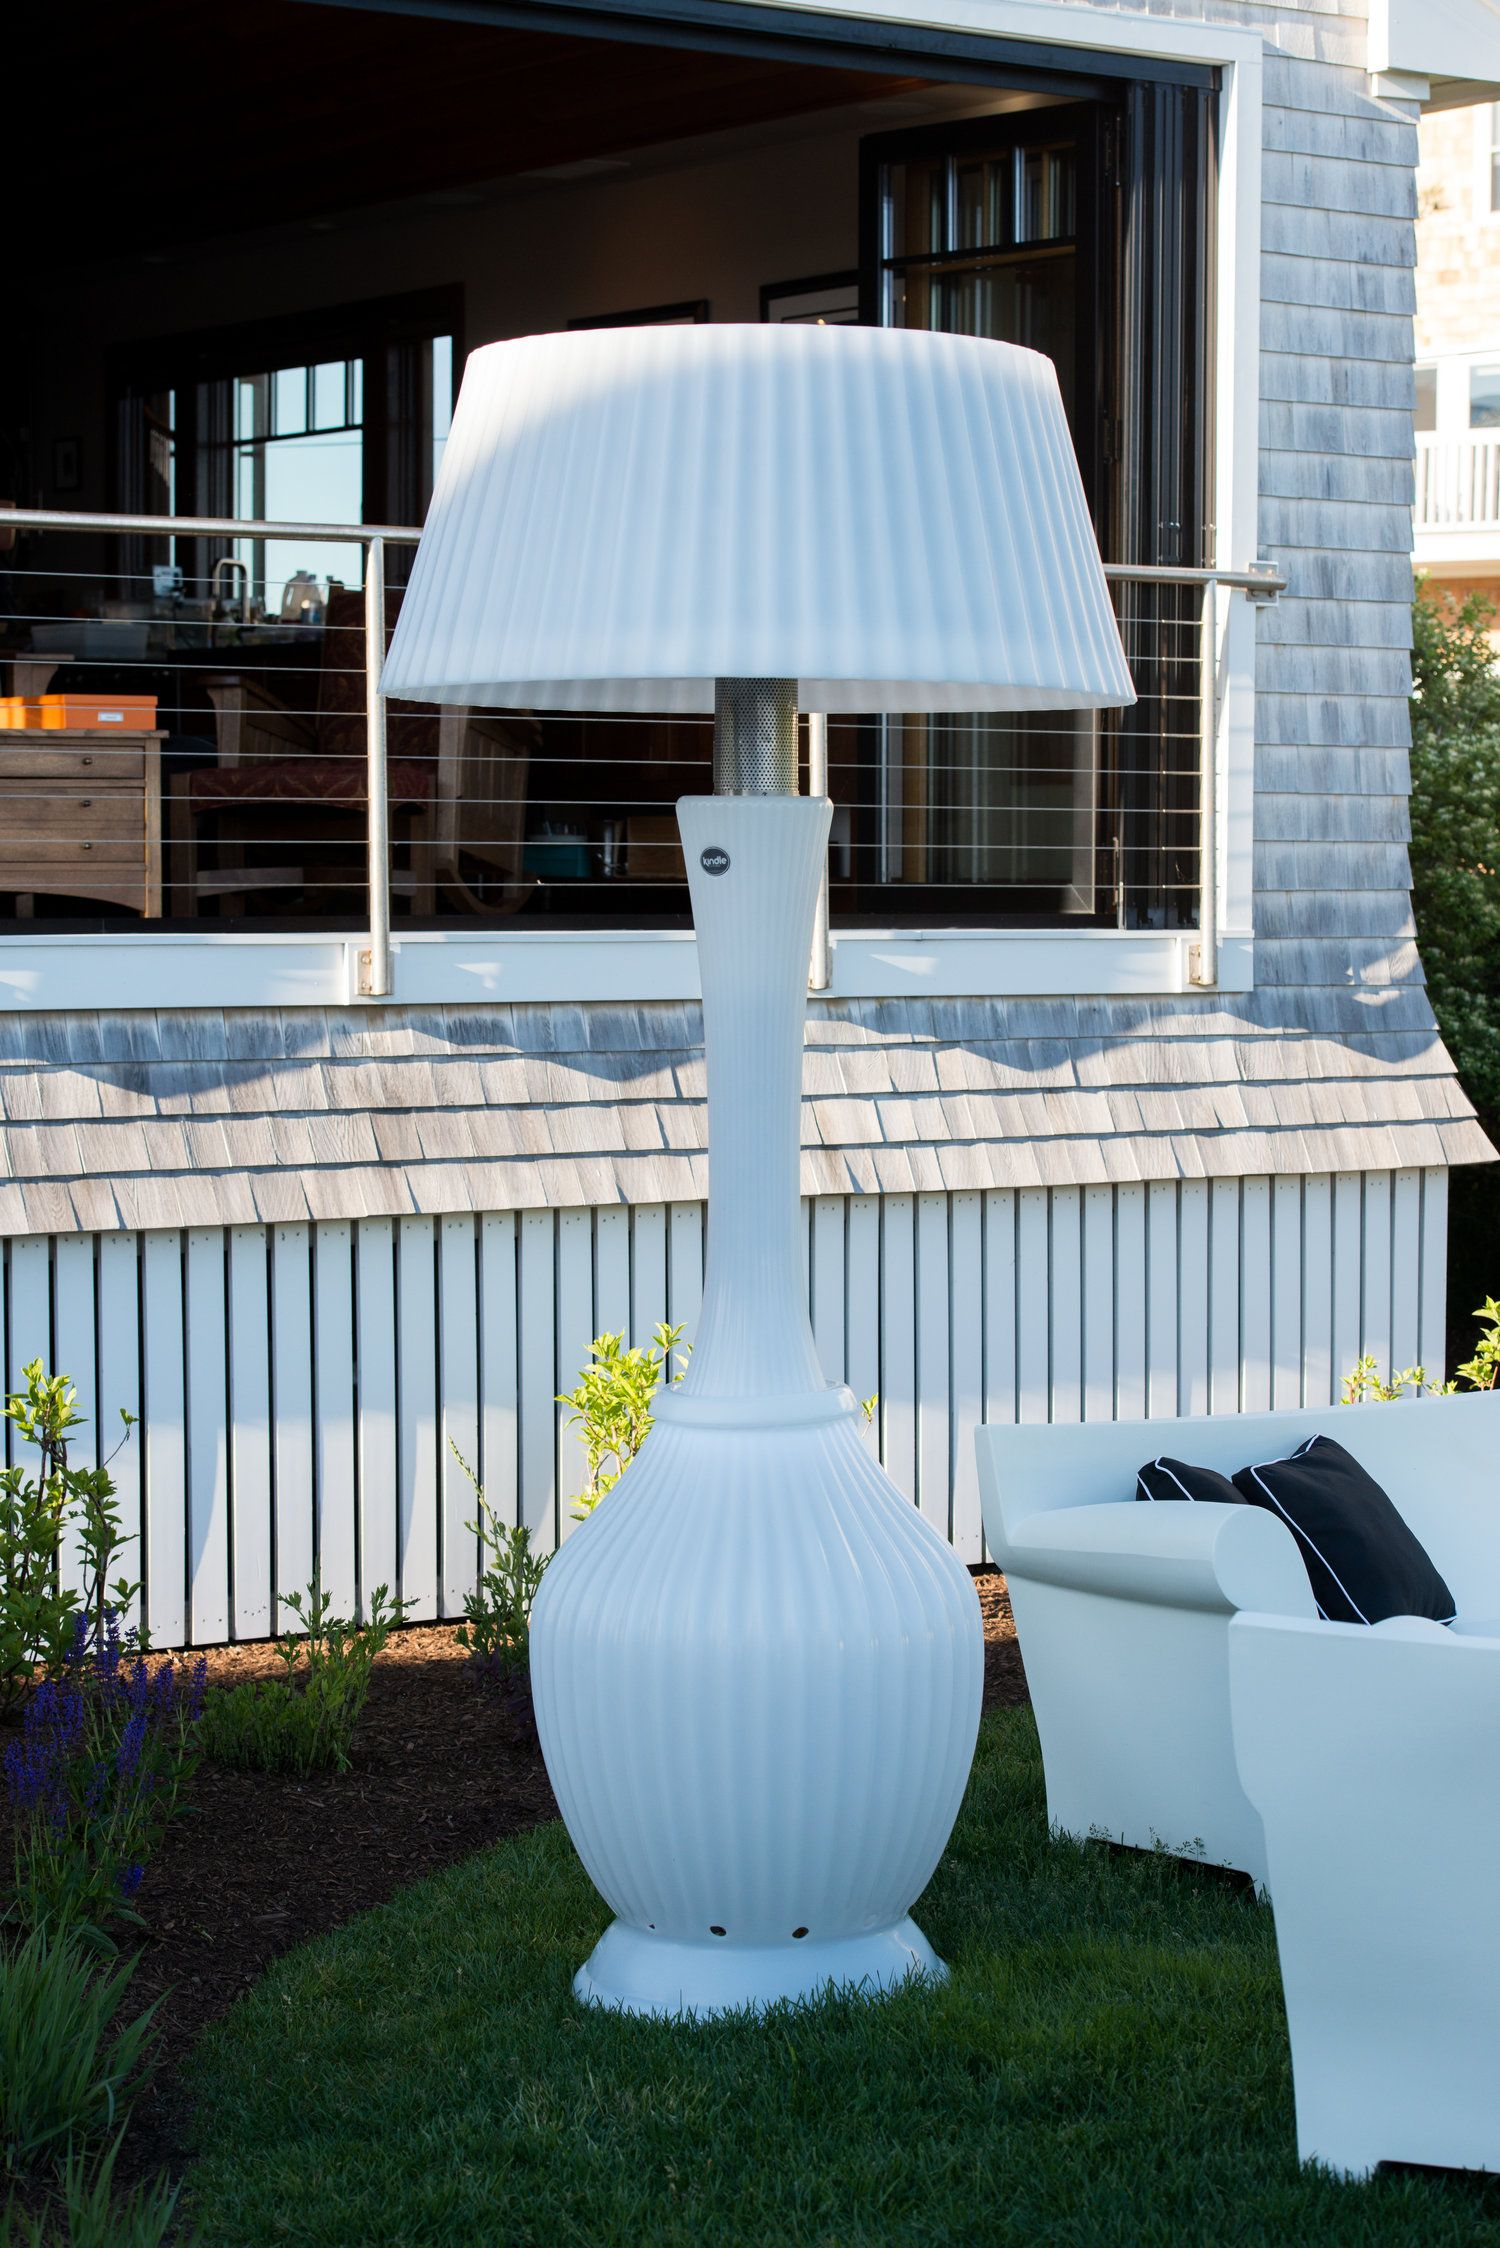 Kartell patio furniture and kindle living heat lamps at a dinner party on kennebunk beach for the annual kennebunkport festival